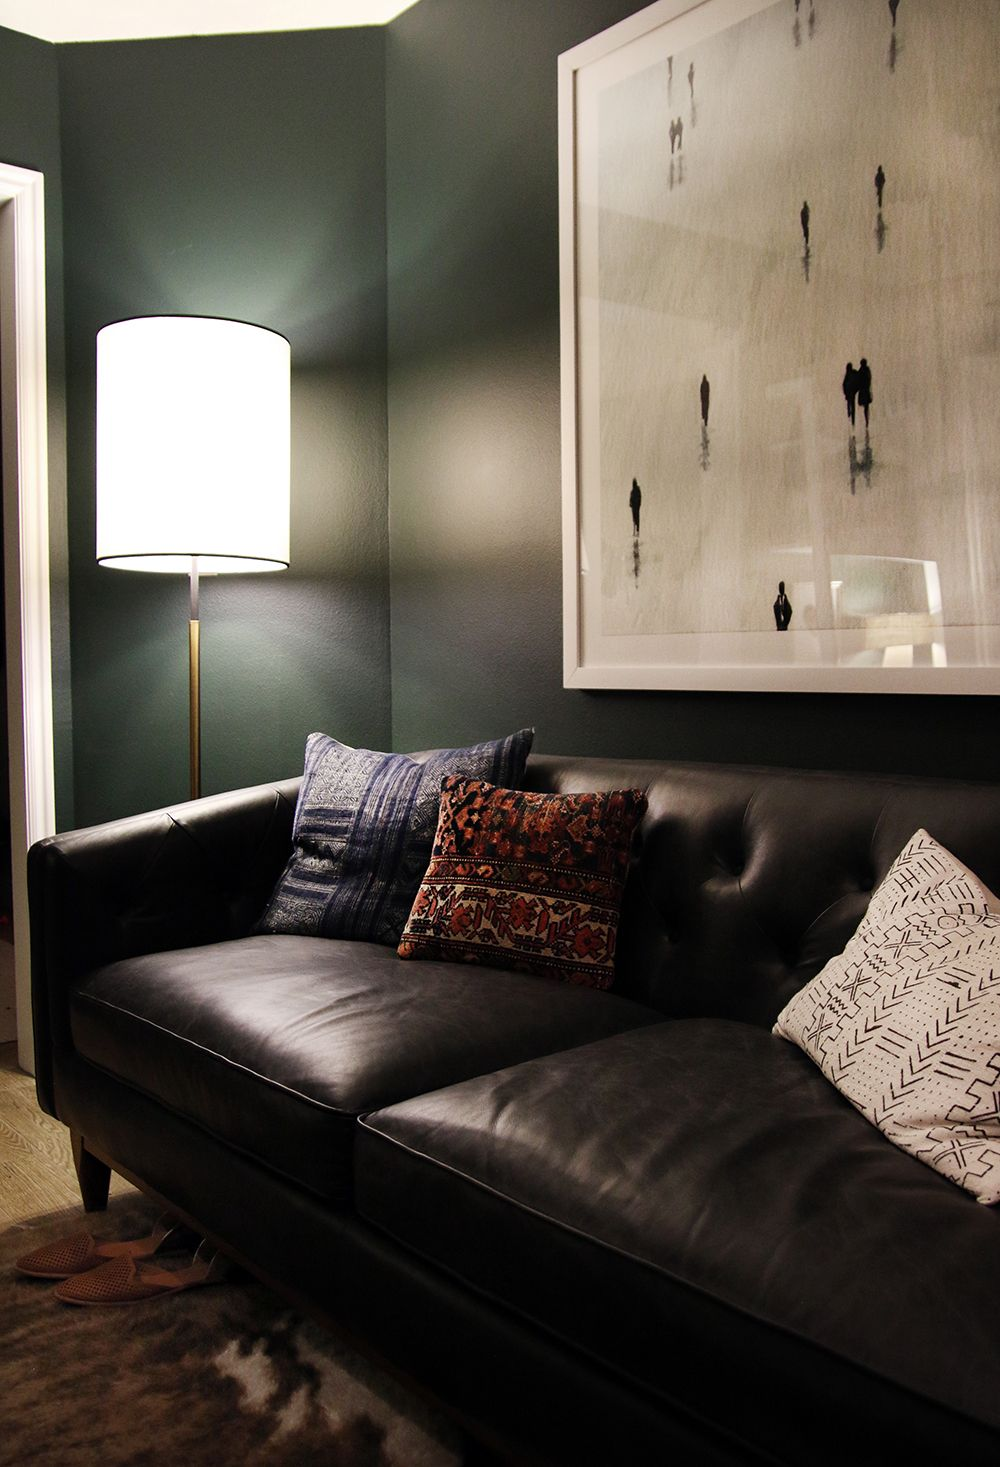 deep green walls paint color is pine grove by clark on indoor wall paint colors id=84319